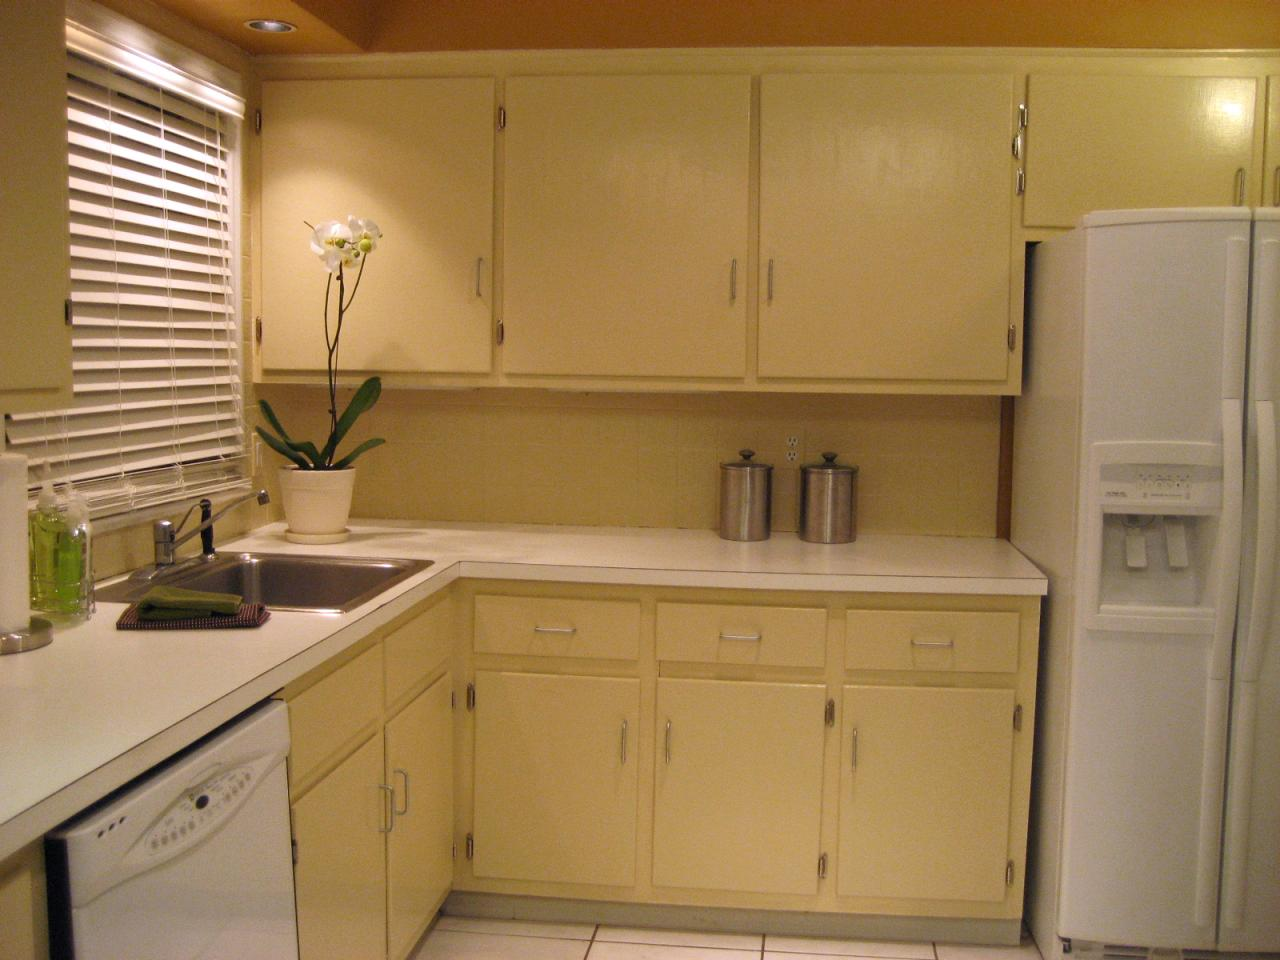 To Paint Kitchen How To Paint Kitchen Cabinets Hgtv